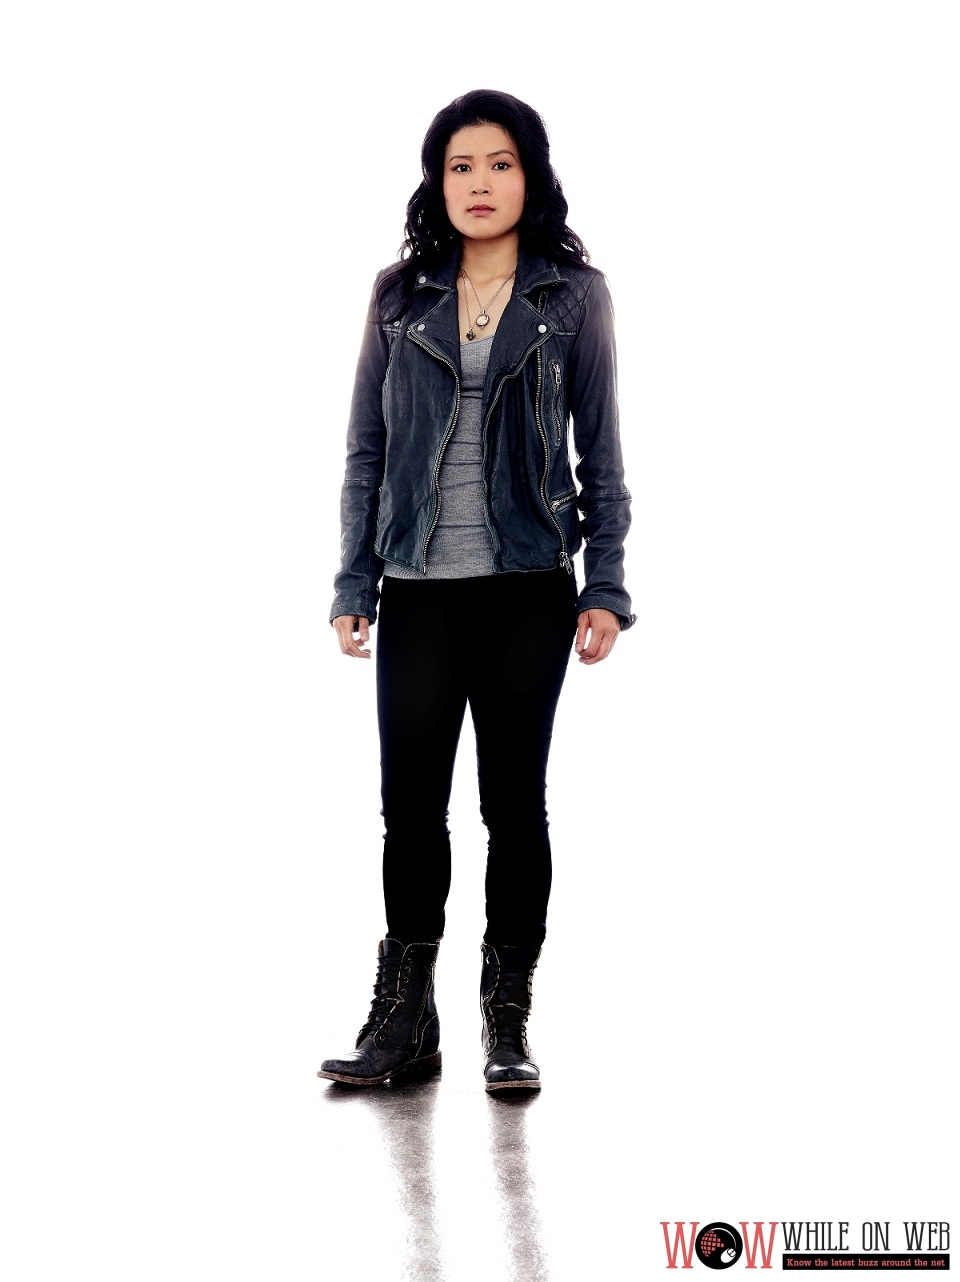 Jadyn Wong's brand of female power in Scorpion